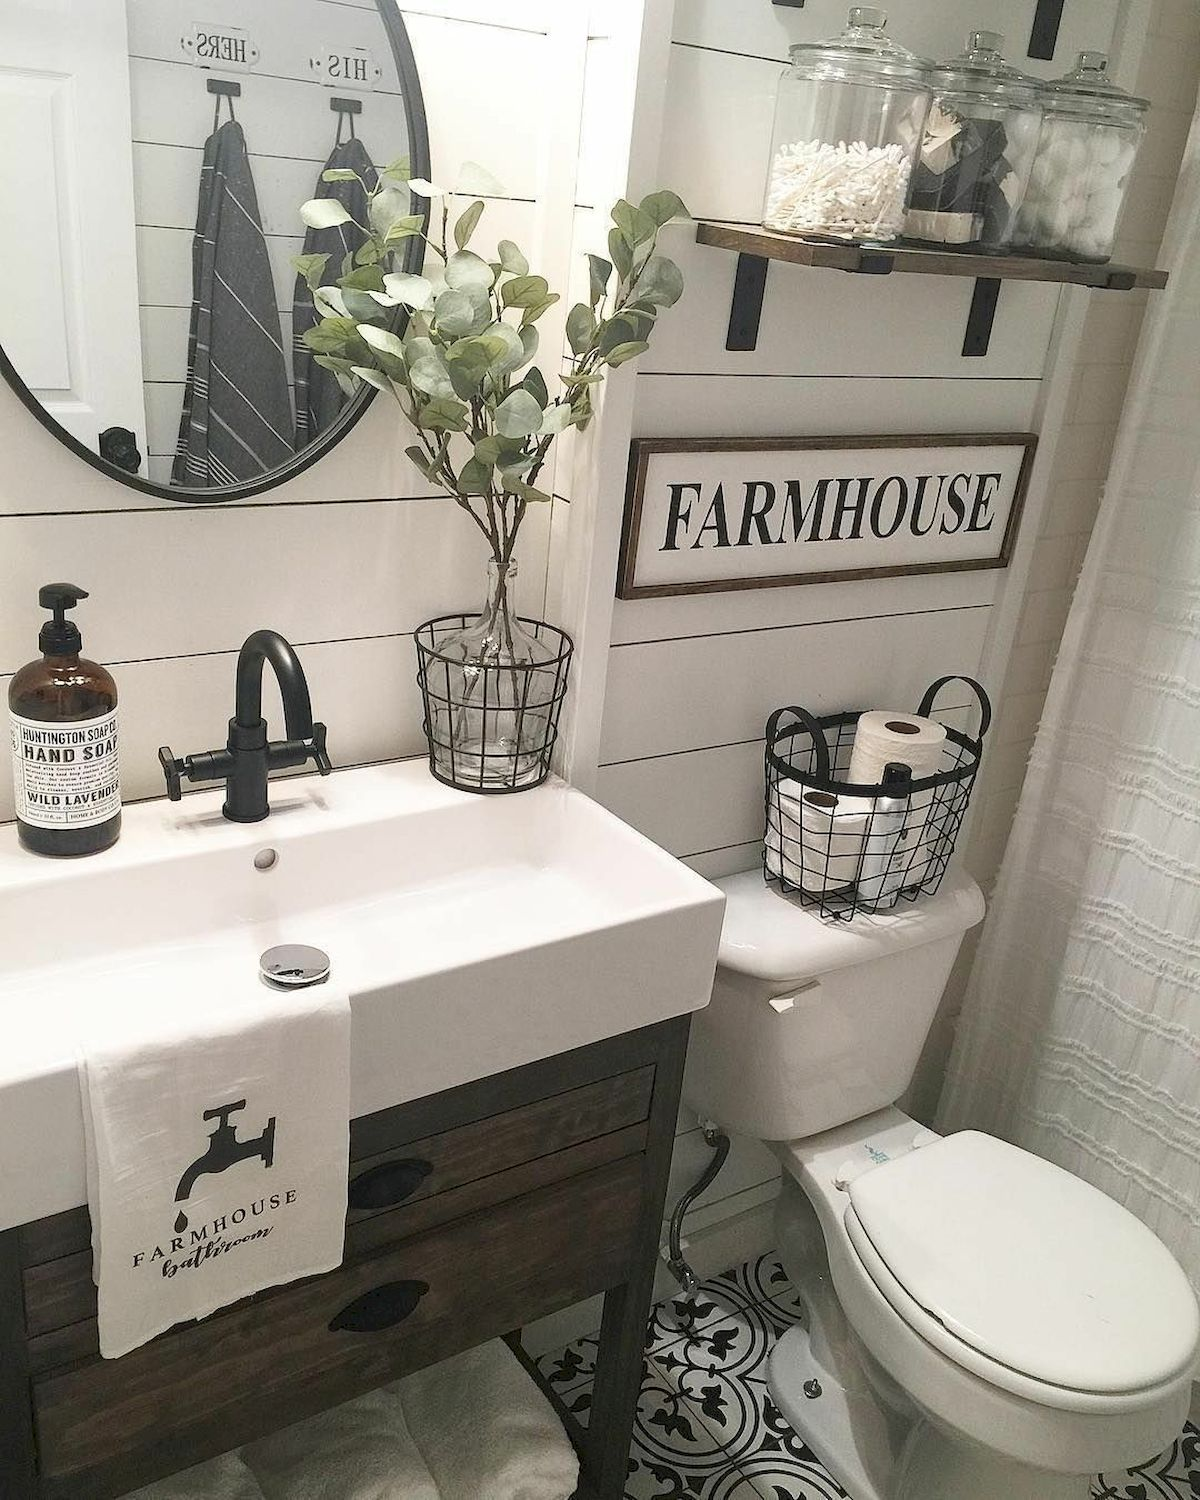 60 Stunning Farmhouse Bathroom Decor and Design Ideas ... on Farmhouse Bathroom Ideas  id=11924